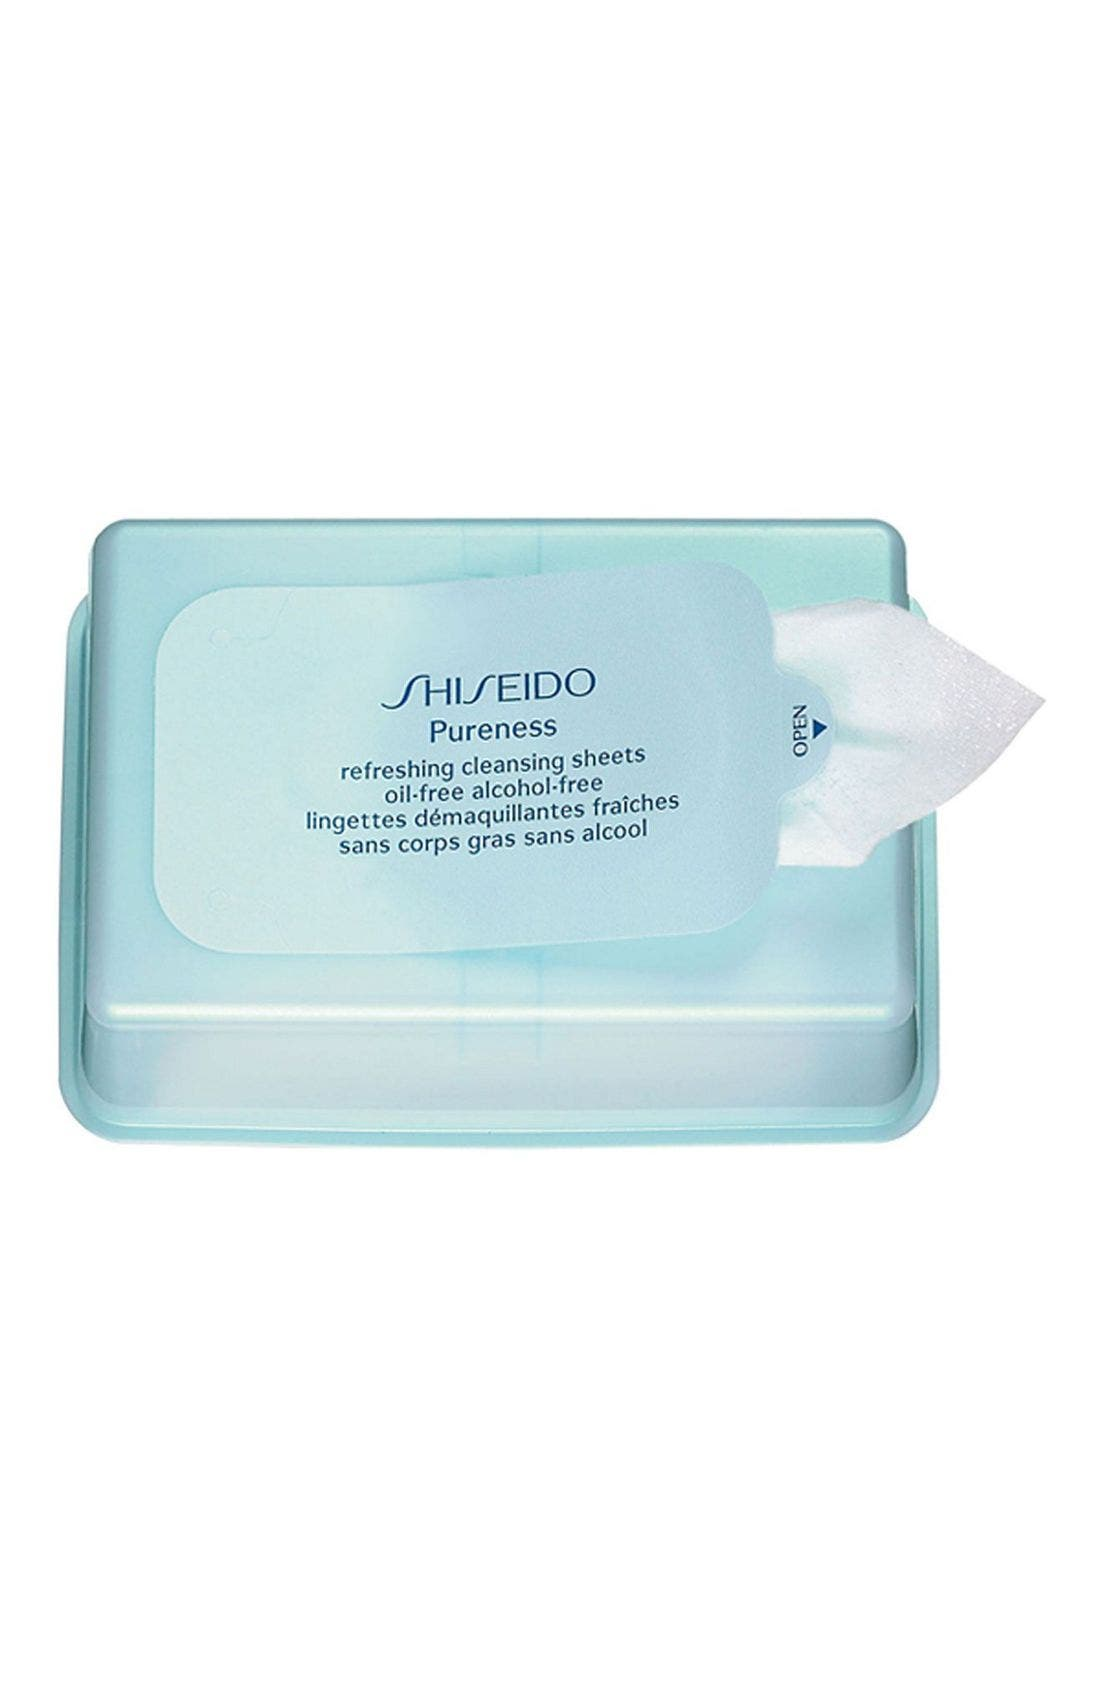 Shiseido 'Pureness' Refreshing Cleansing Sheets